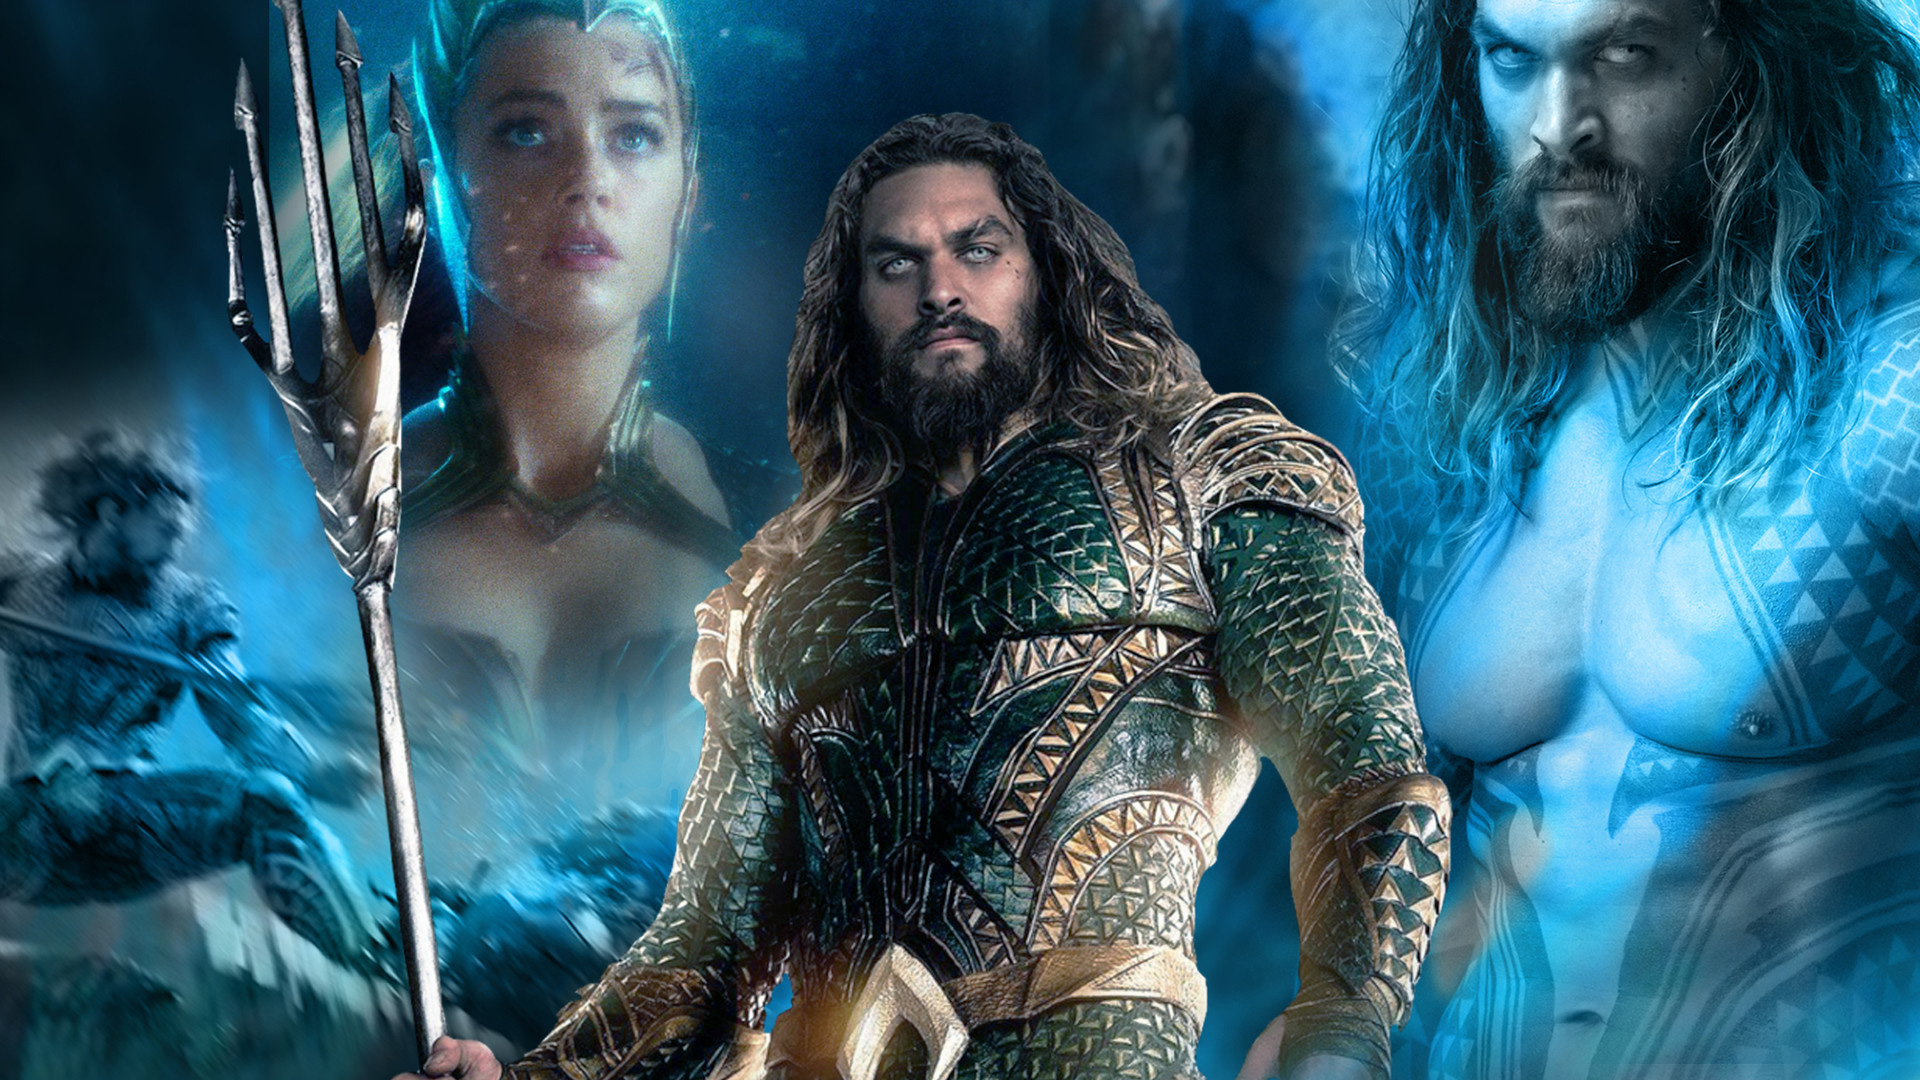 2018 Movie Posters: Aquaman 2018 Movie Poster, HD Movies, 4k Wallpapers